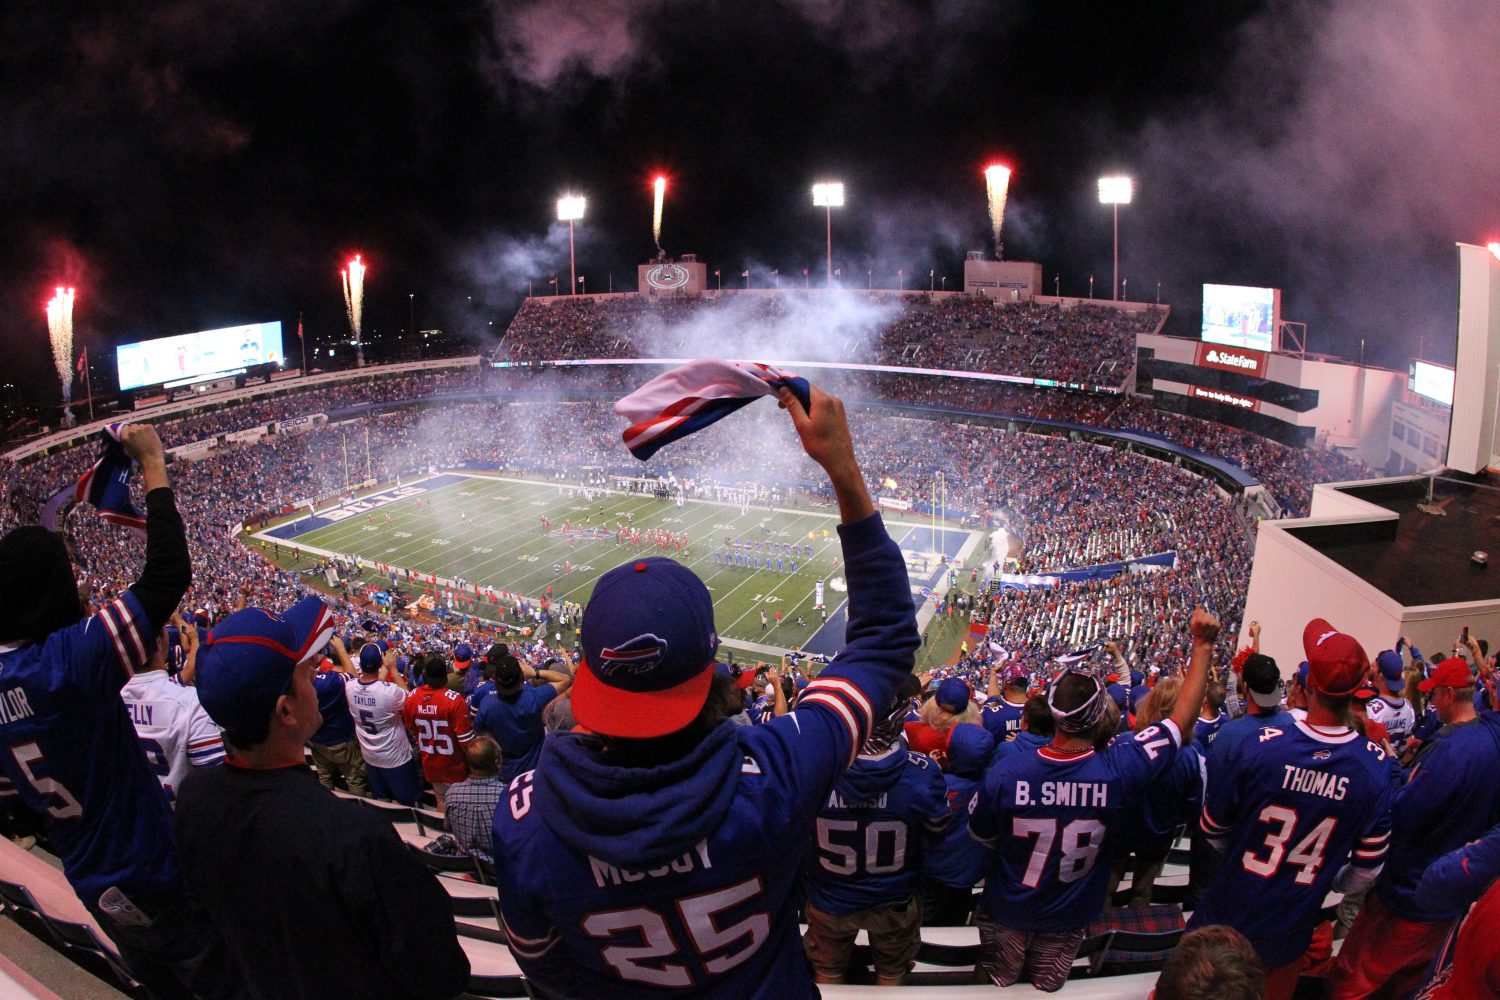 Bill fans cheer - when they still had a reason to cheer - as their team takes the field for the Jets game at New Era Field in Orchard Park. (James P. McCoy/ Buffalo News)